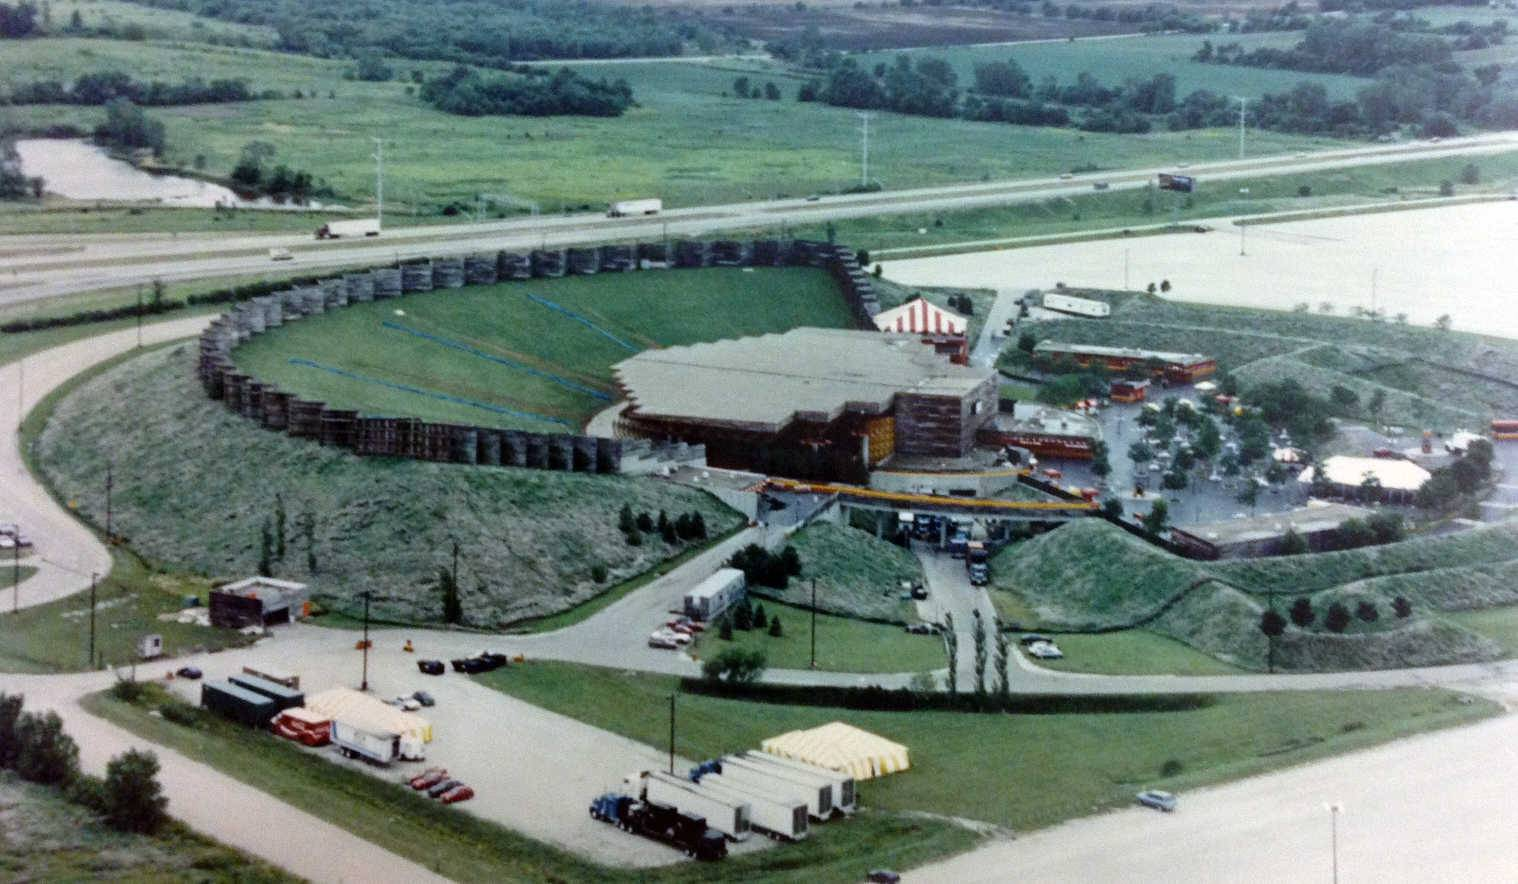 The Poplar Creek Music Theatre in Hoffman Estates offered shows from 1980 until 1994. This Sept. 13, 1990 image shows the complex.